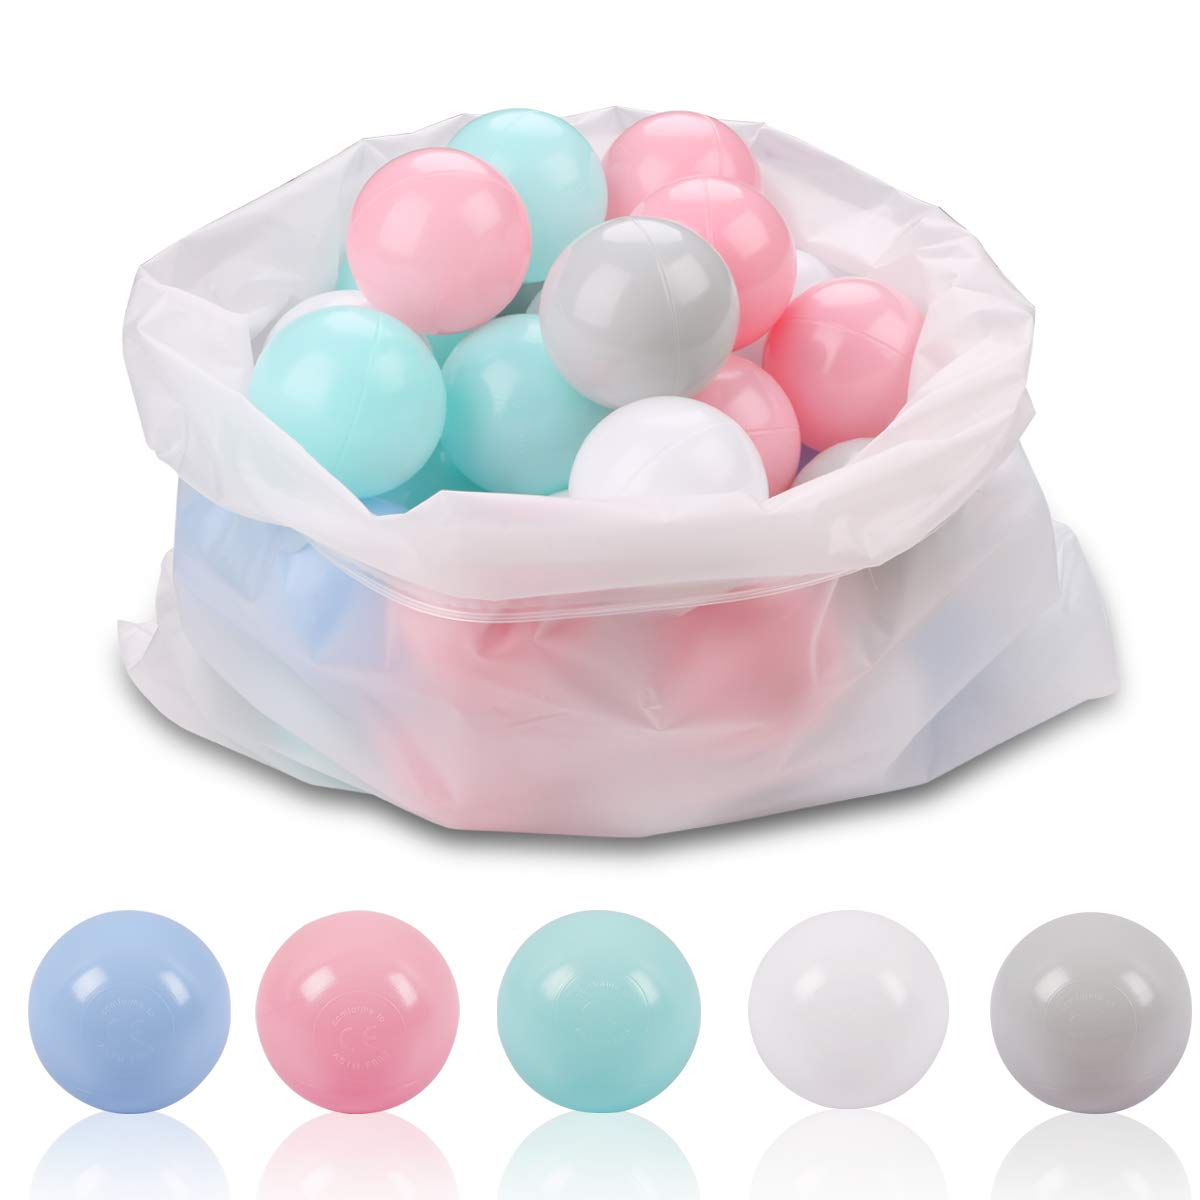 Ball Pit Balls for Kids